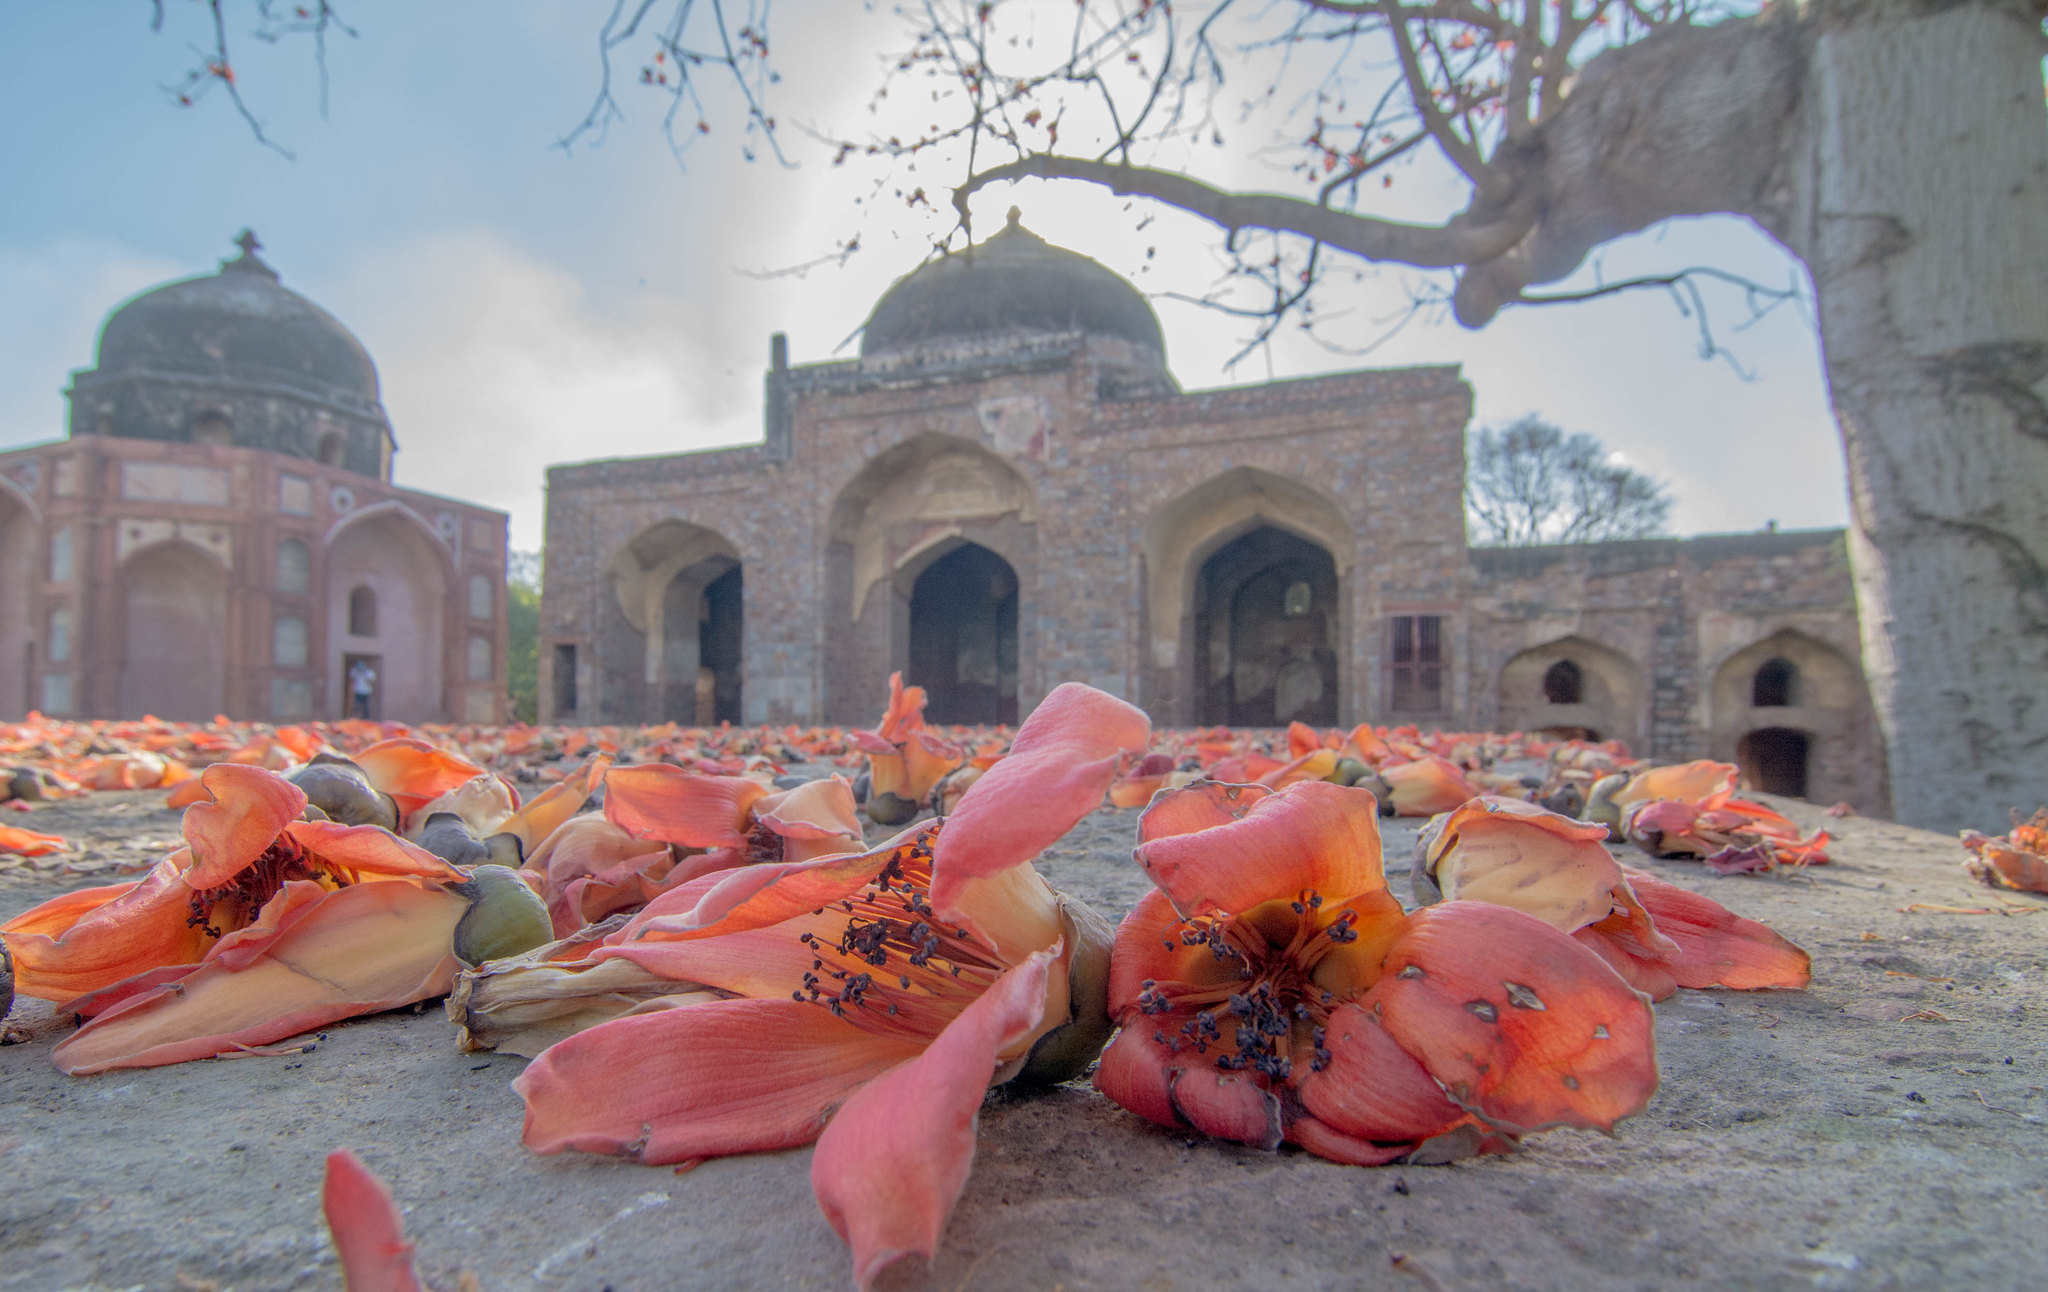 Some flowers in Humayun's Tomb complex